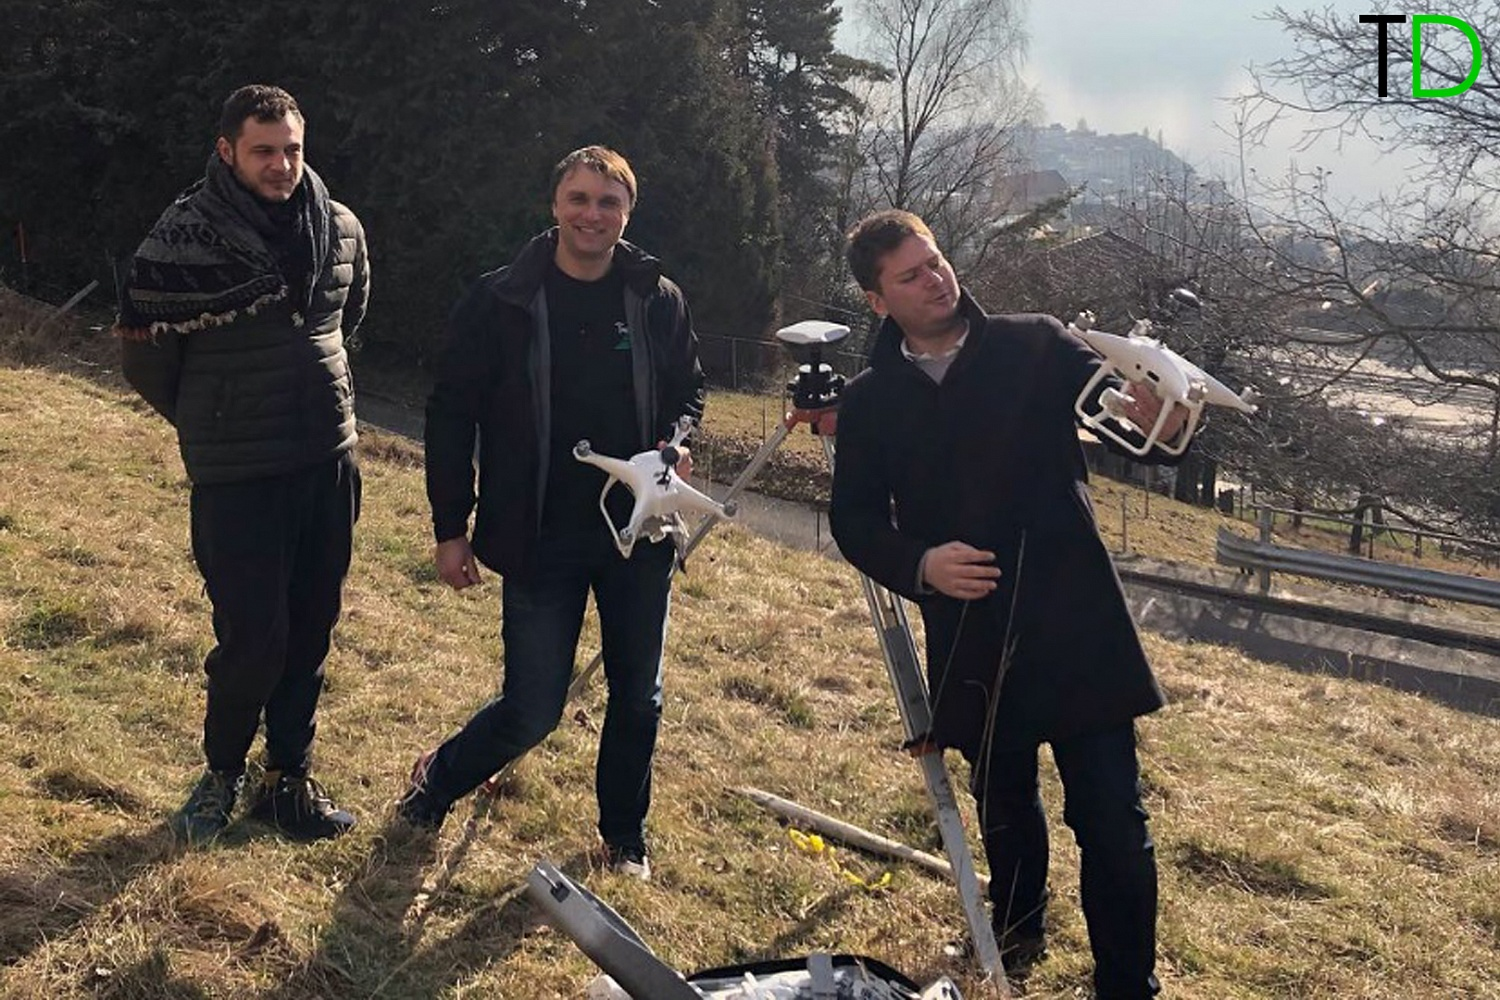 DJI Phantom 4Pro RTK/ PPK UAV survey for design & construction in Switzerland